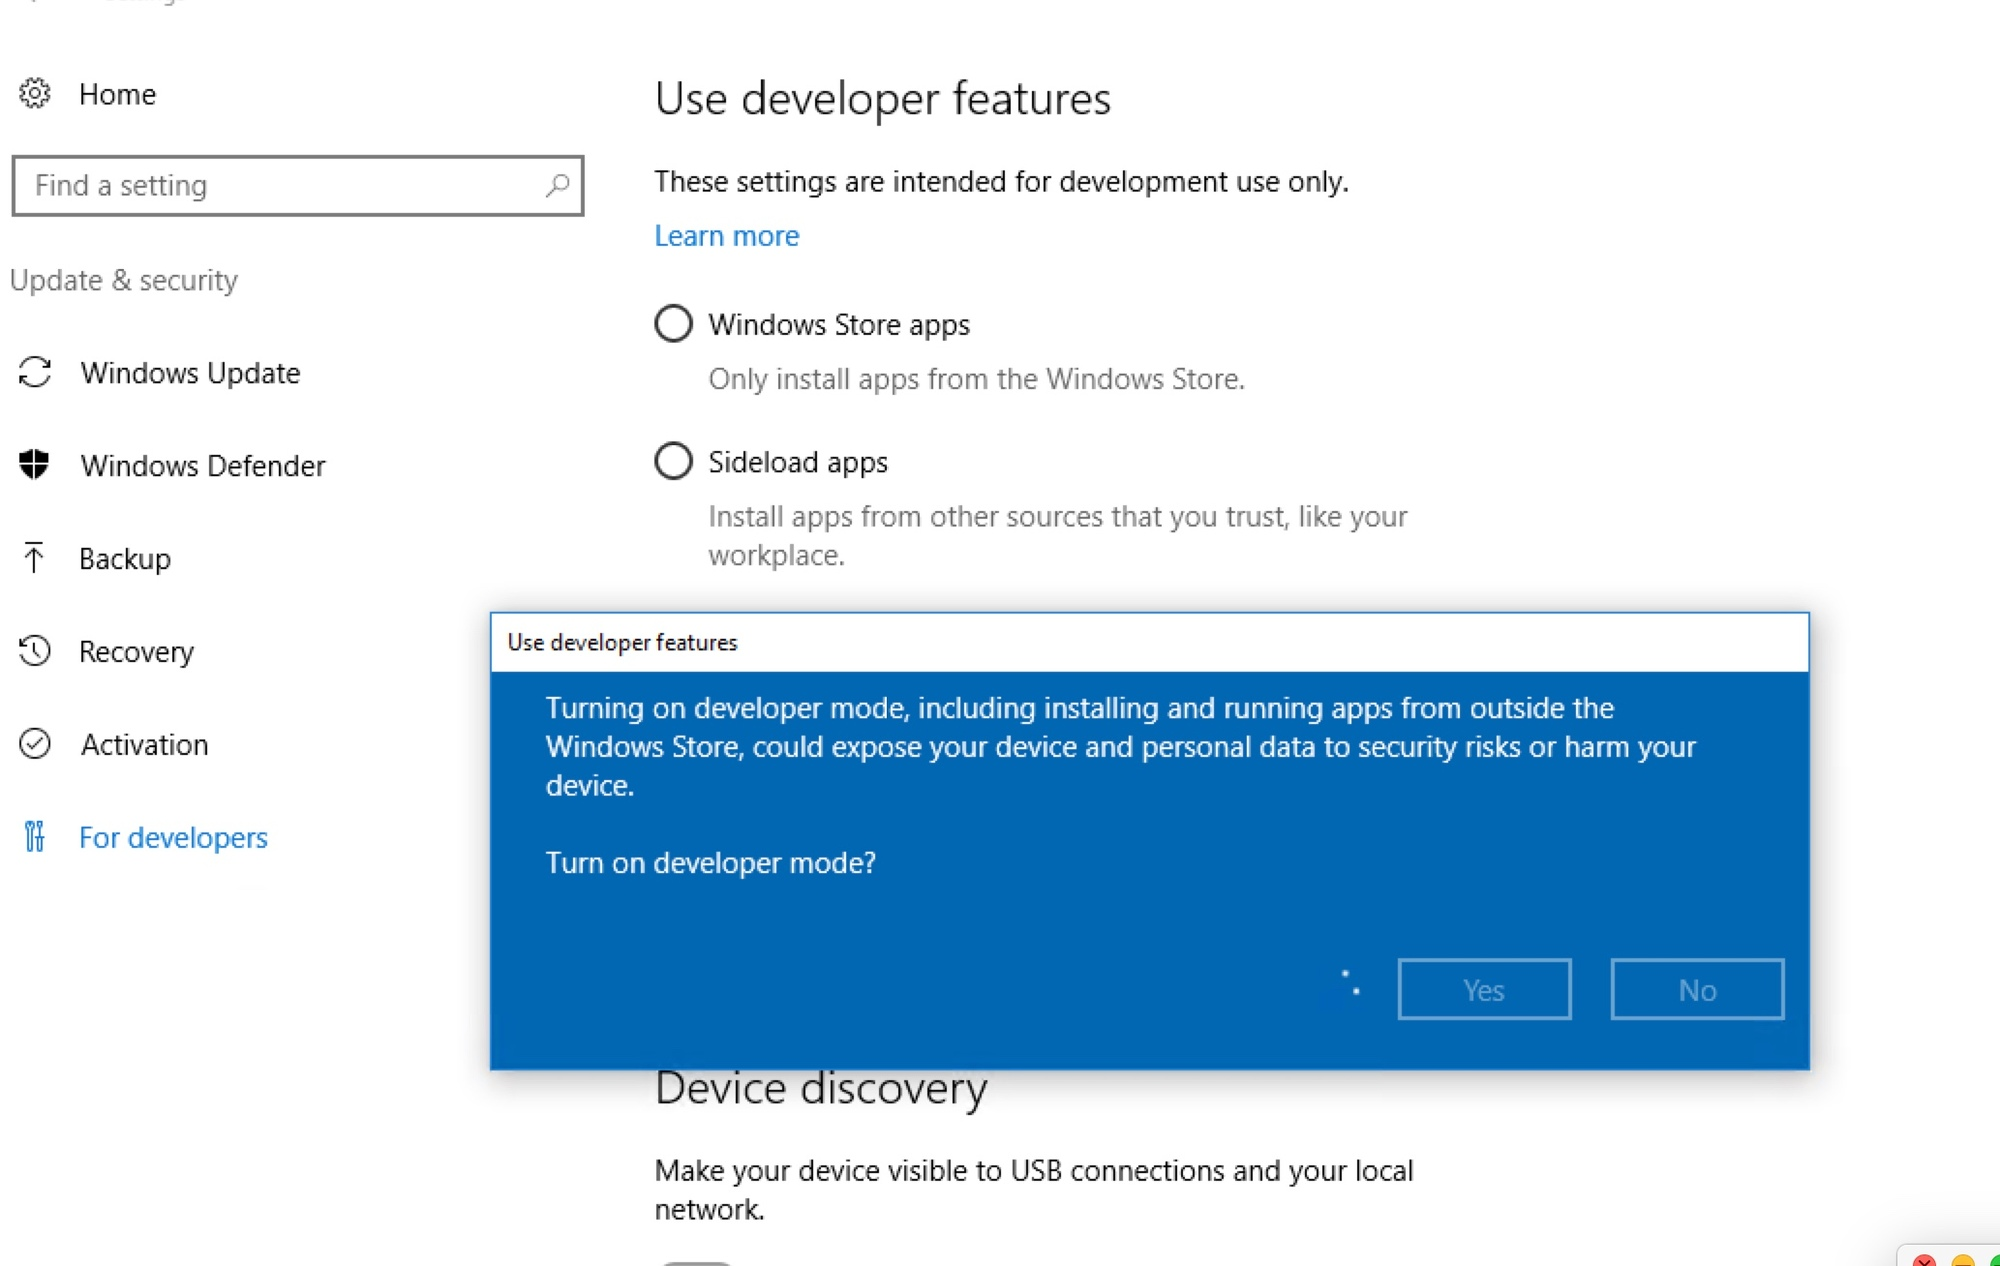 Windows 10 - can't install developer tools 970bfc7a-8a94-4af6-9b38-59afbdf776f6?upload=true.jpg